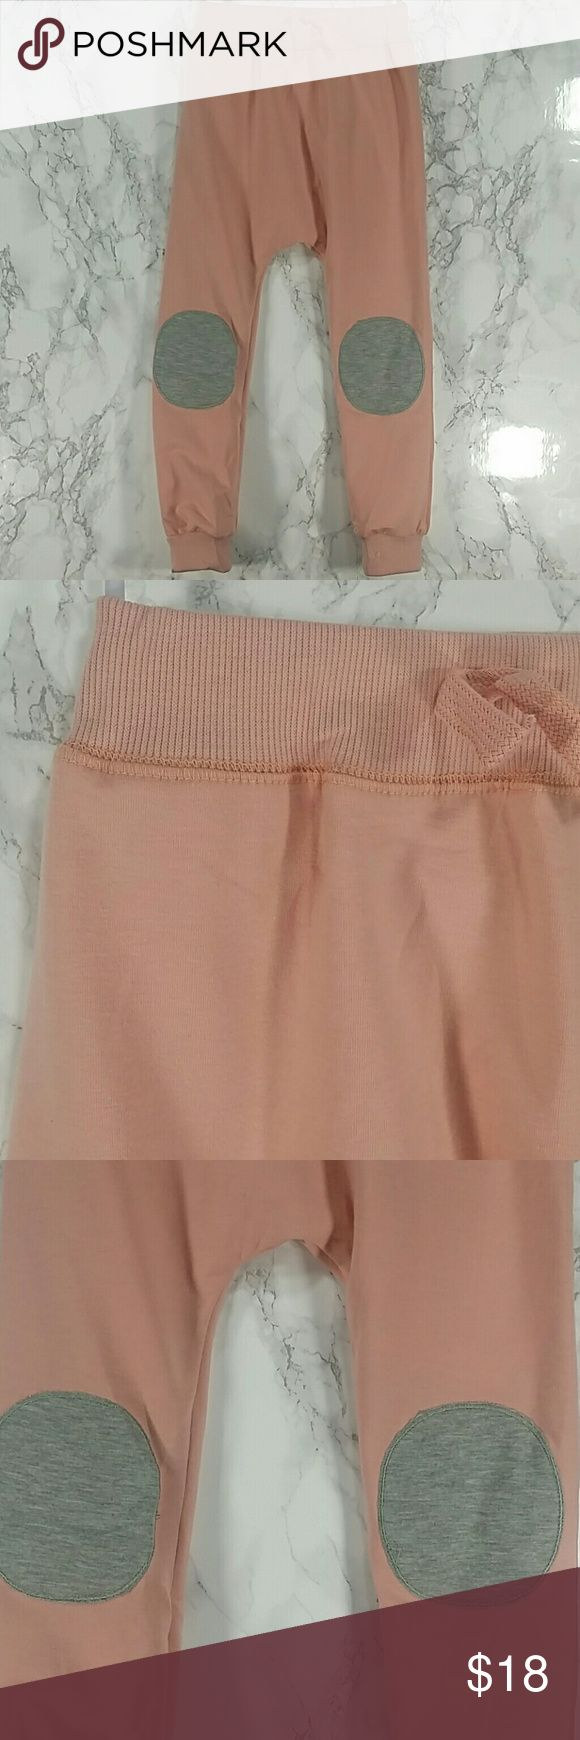 Light pink patches sweatpants. Kids Adorable and comfortable light pink sweatpants with knee patches.  Pull up style.  This item is brand new and never used.  #11608 Bottoms Sweatpants & Joggers